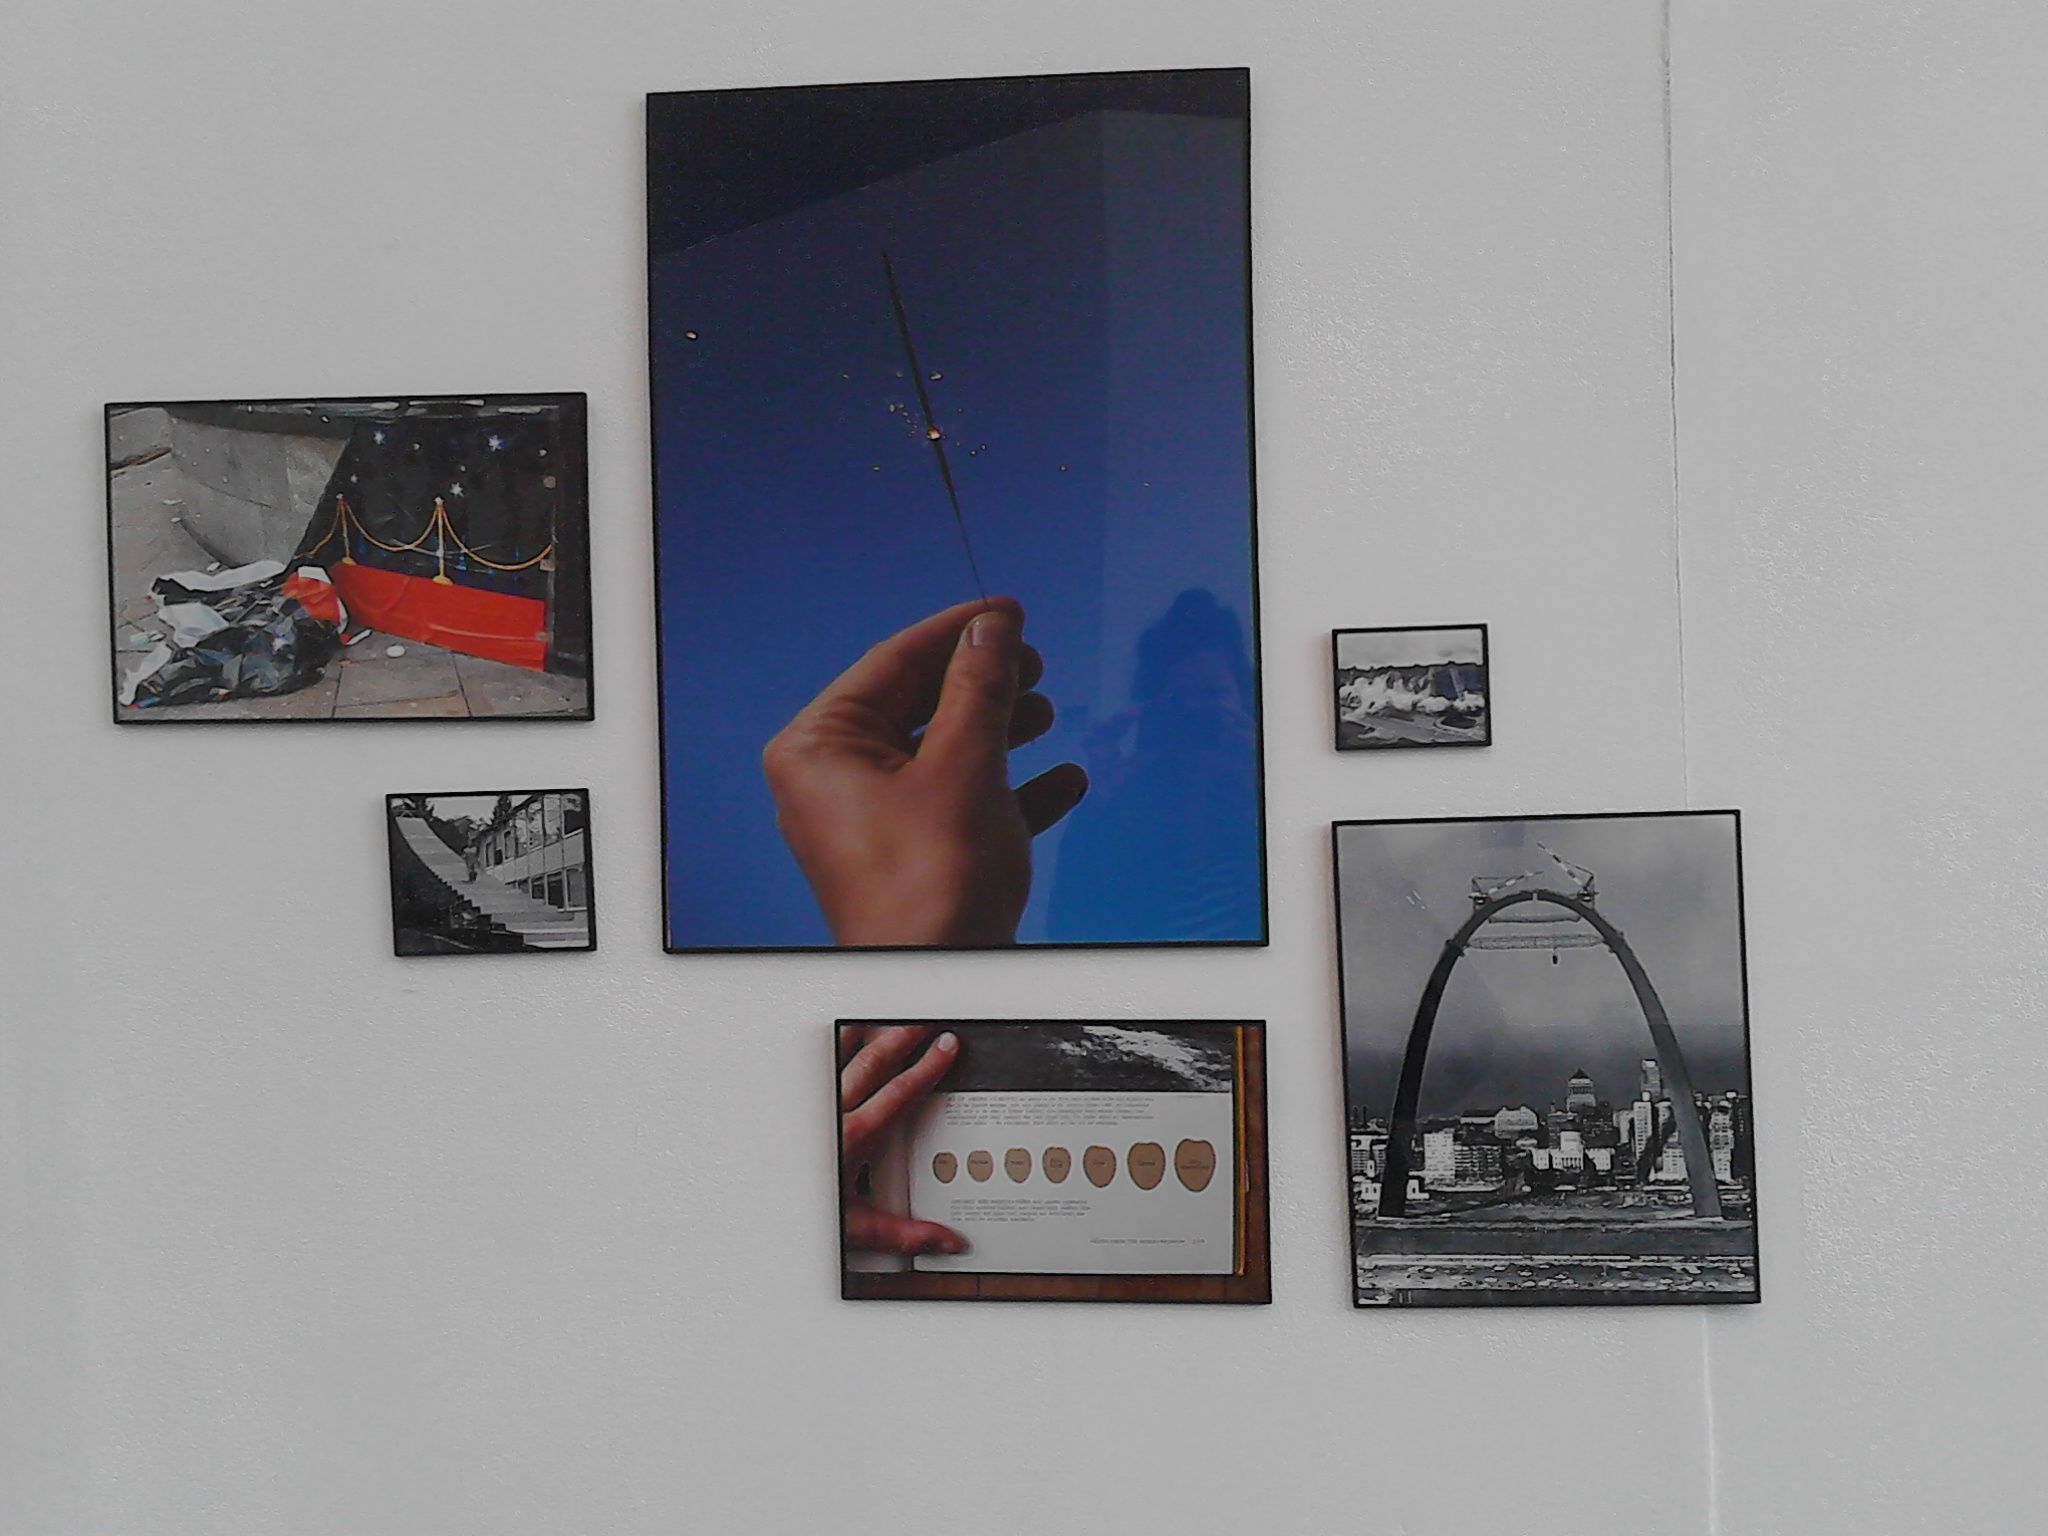 Installation view of 'Image Library', collection of found and artist's photographs (2013 - ongoing)George Eksts. Photo: Sacha Waldron. Image courtesy of the artist the UH Gallery